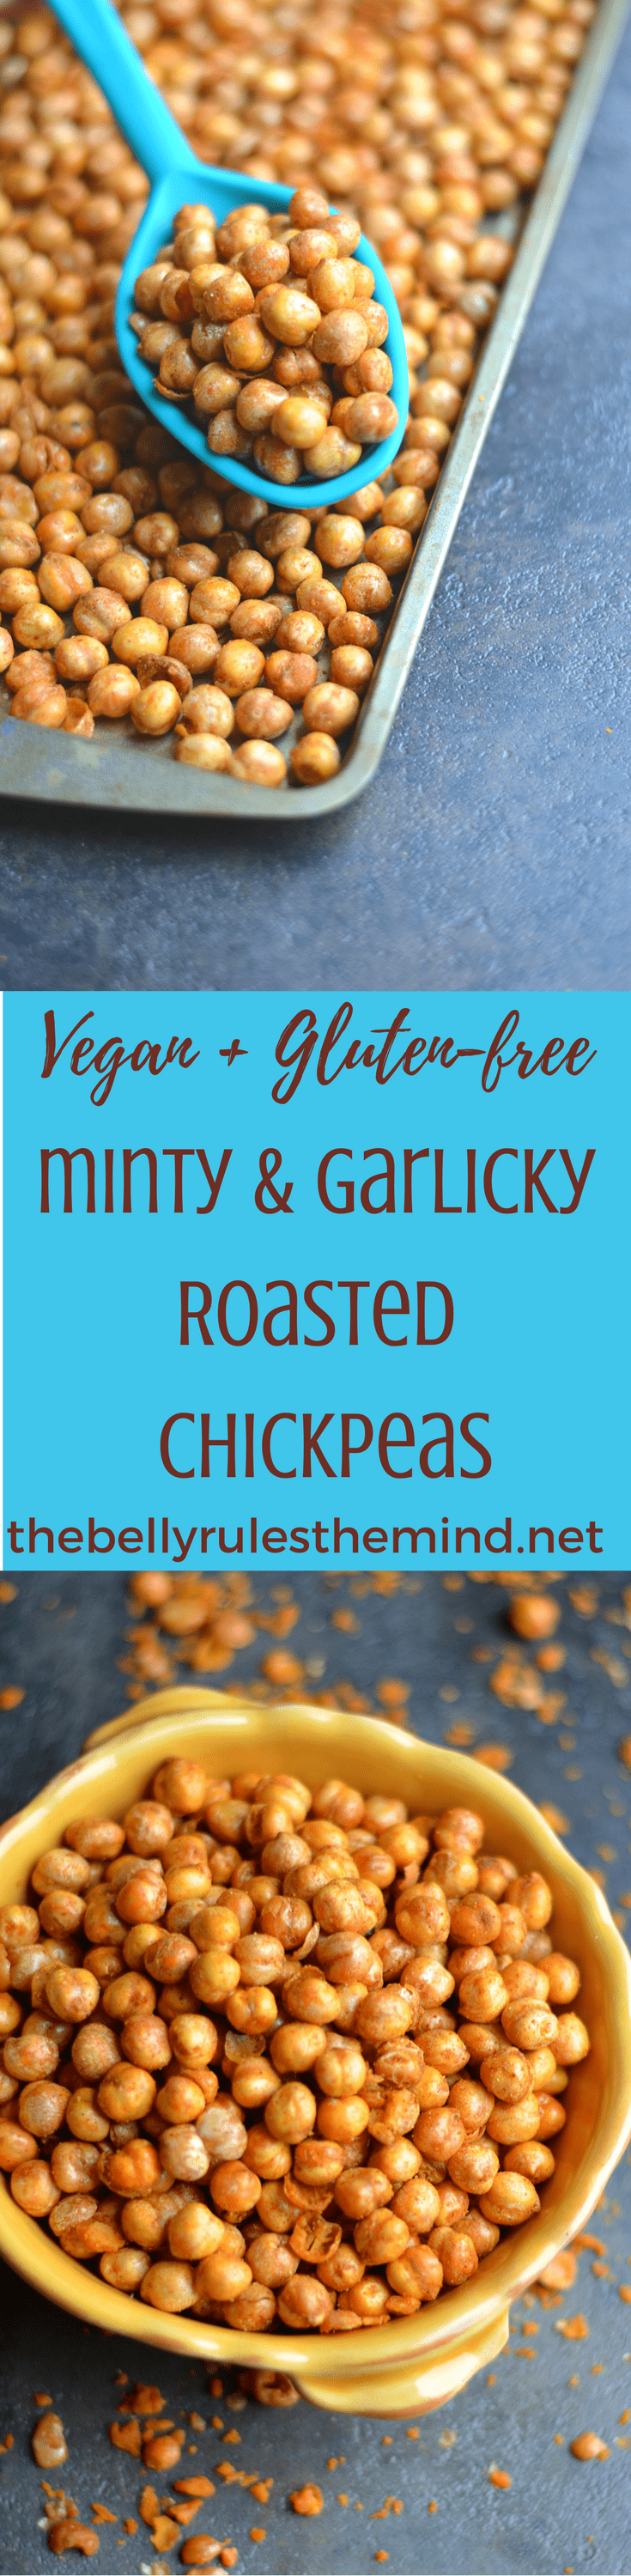 Minty & Garlicky Roasted Chickpeas-If you're looking for a healthy snack to satisfy that mid-day, salty, crunchy craving, then these Minty & Garlicky Roasted Chickpeas are the go-torecipe!.Vegan.|https://www.thebellyrulestheind.net @bellyrulesdmind